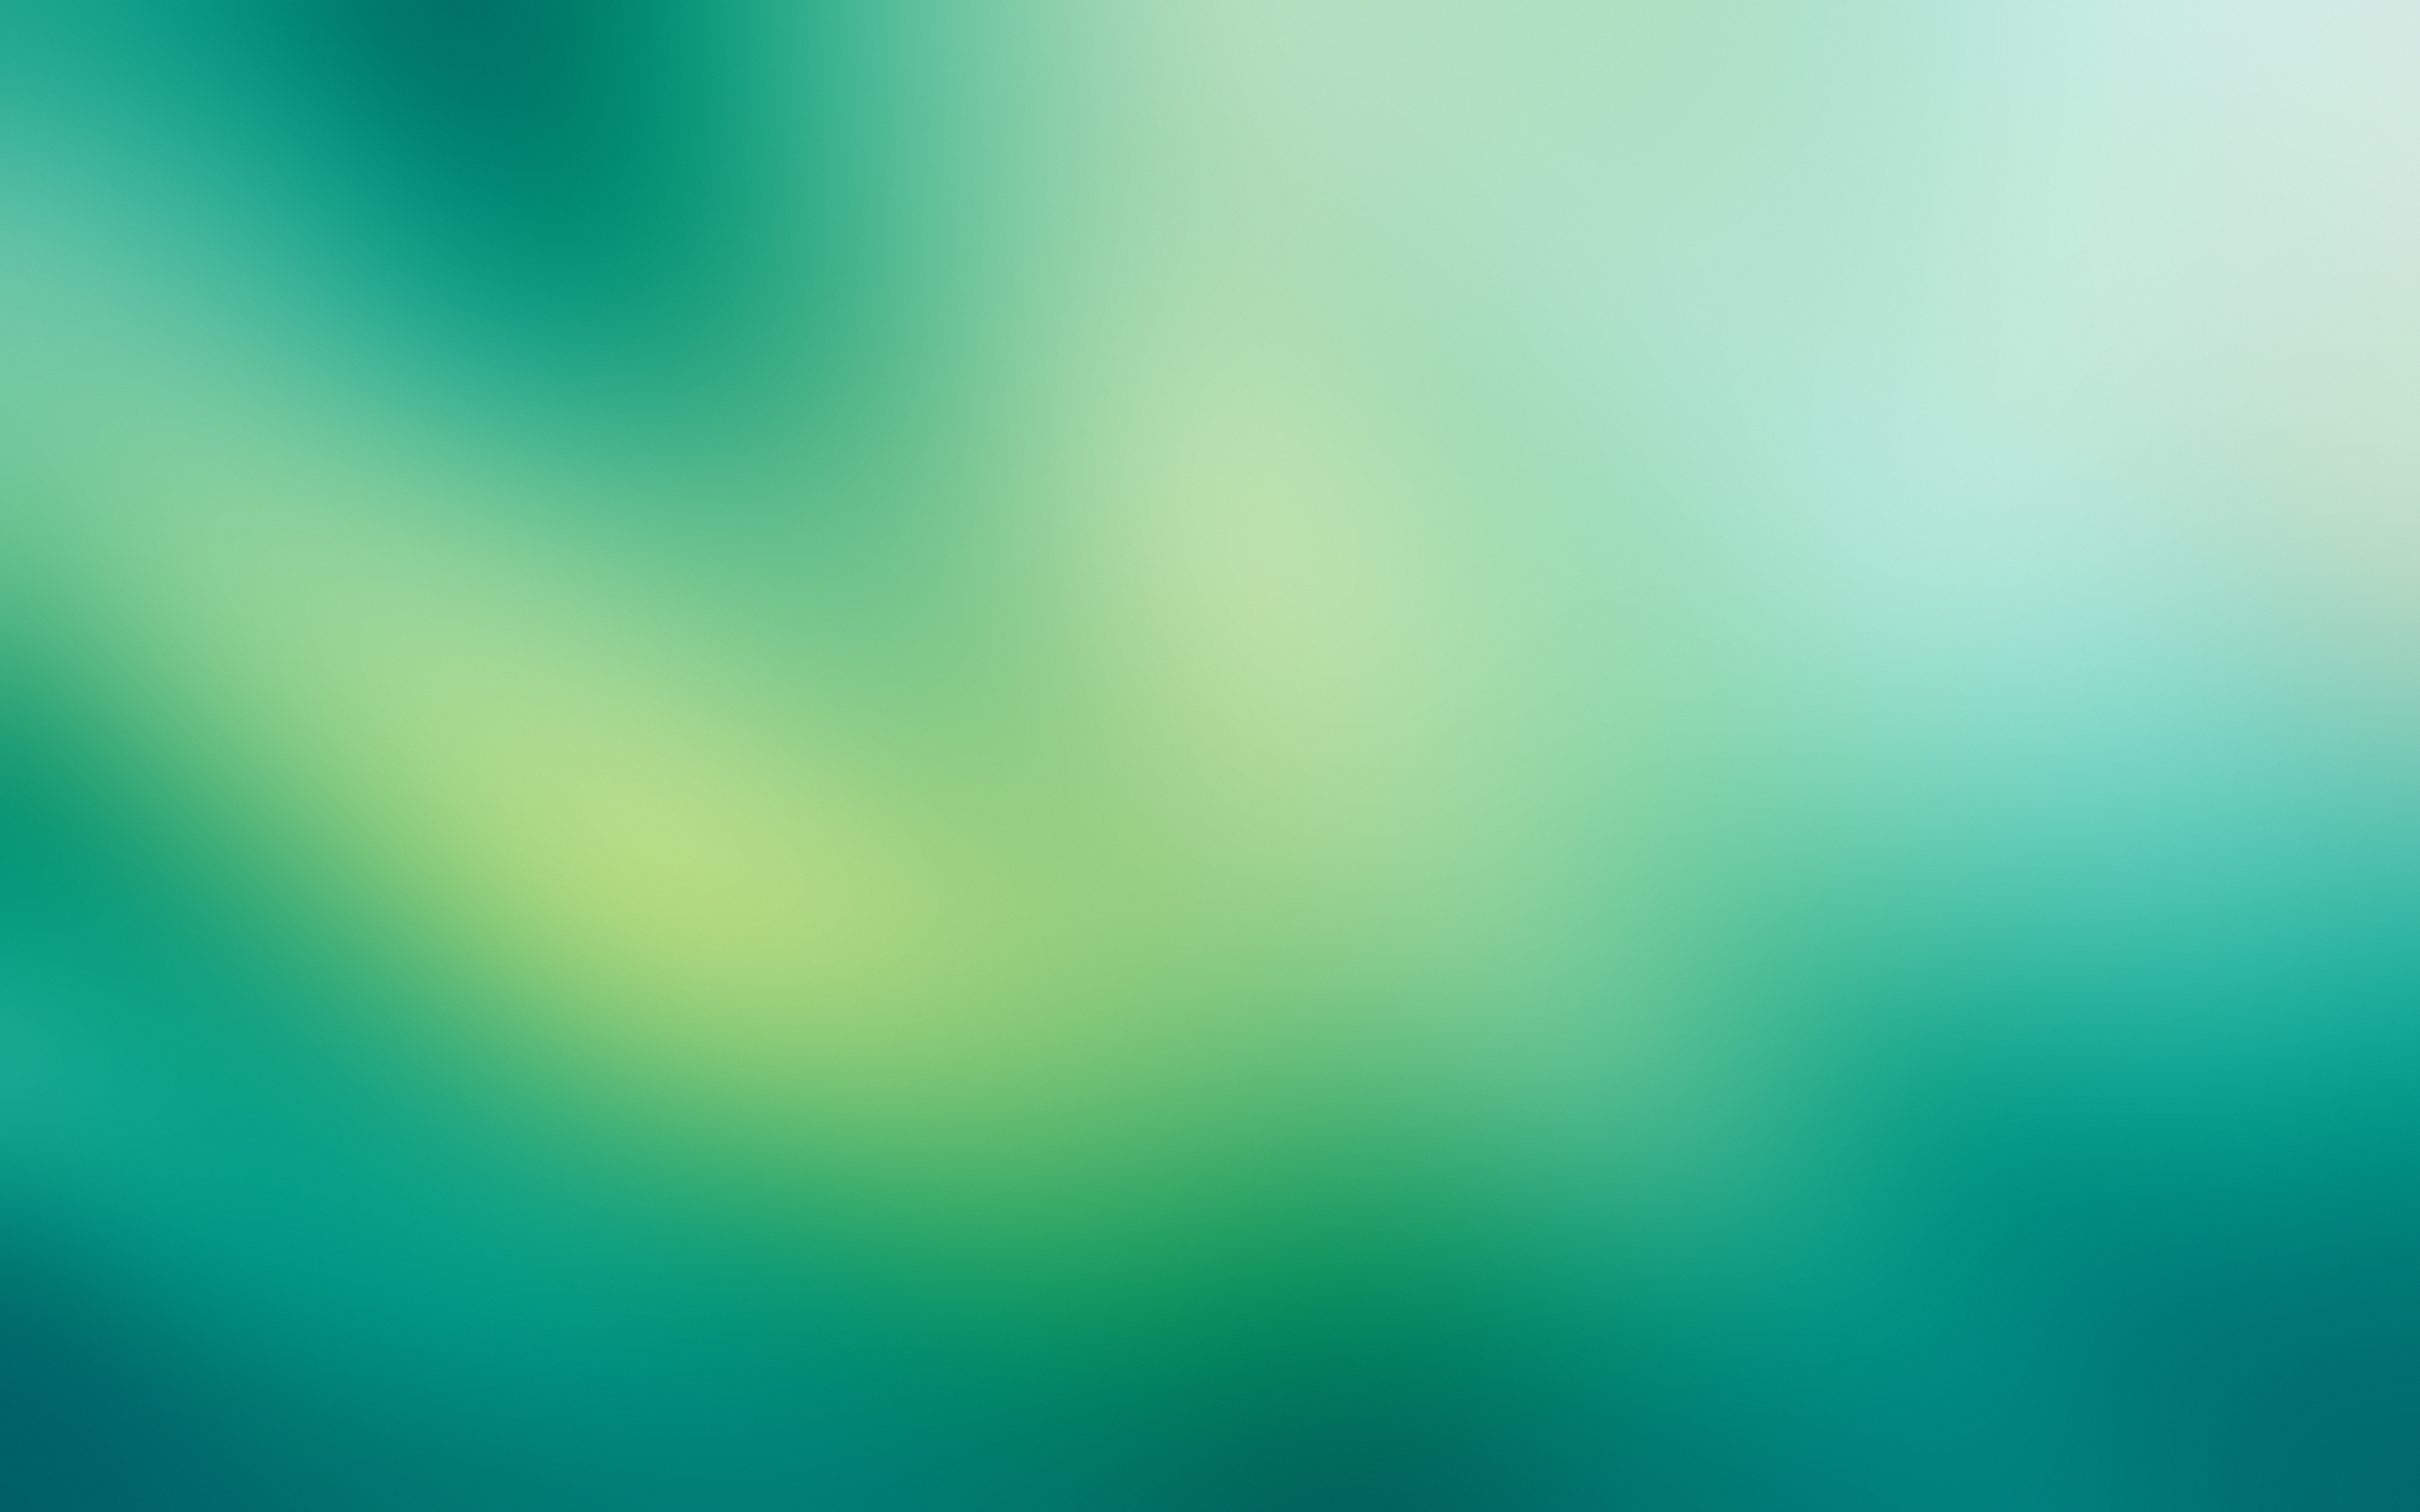 Back To eLive by MustBeResult, green, mist, abstract, digital art, design, background